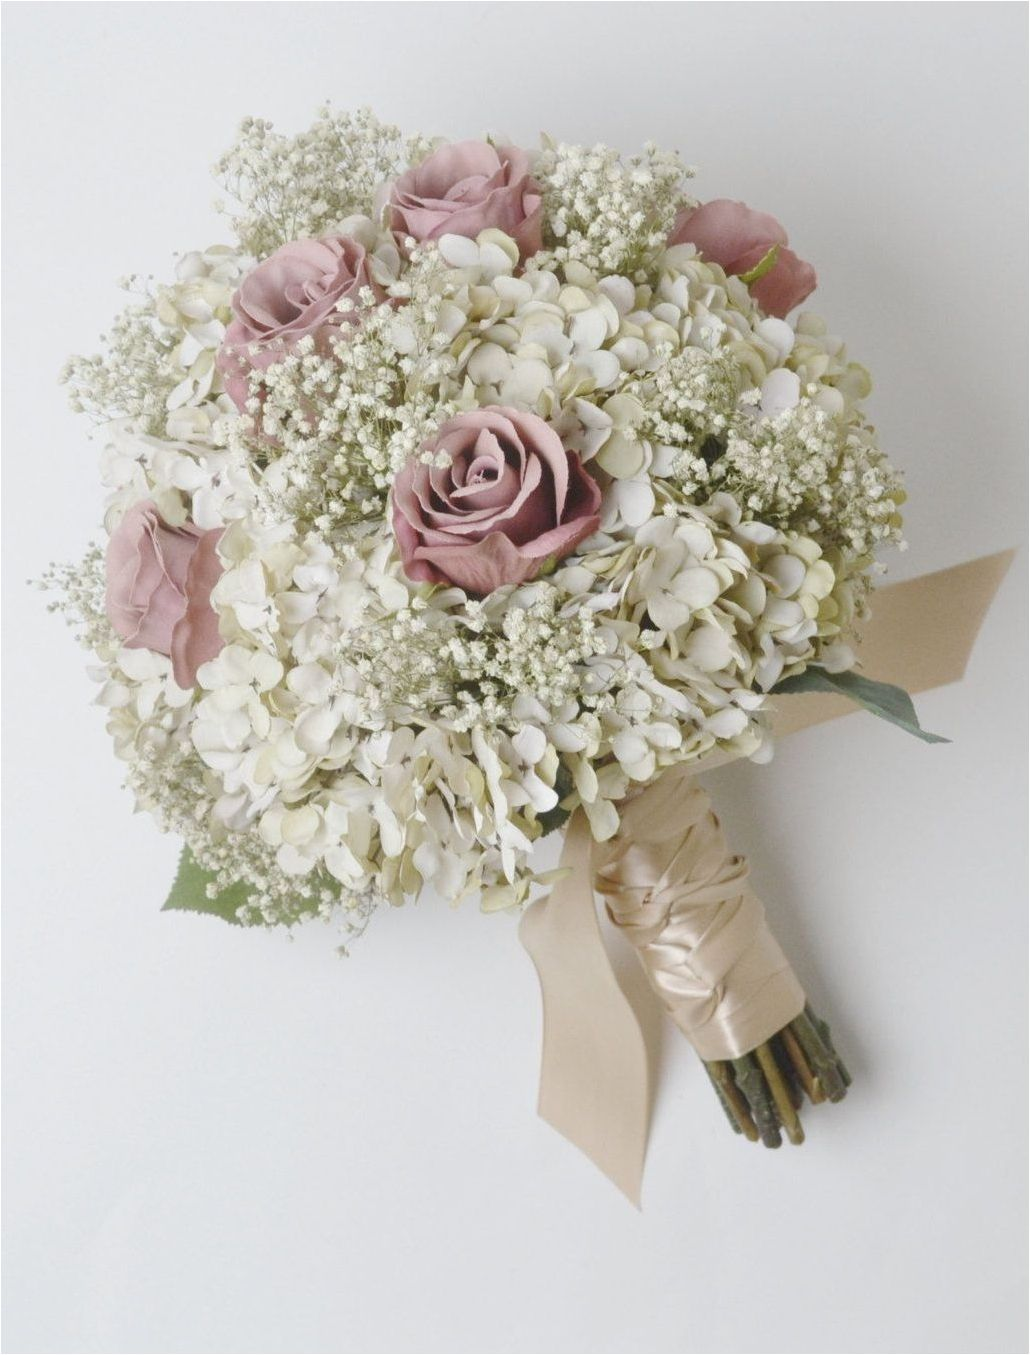 Simple baby breath bouquet and boutonniere inspirations pinterest attractive simple baby breath bouquet and boutonniere inspirations httpsbridalore20180101simple baby breath bouquet and boutonniere inspirations izmirmasajfo